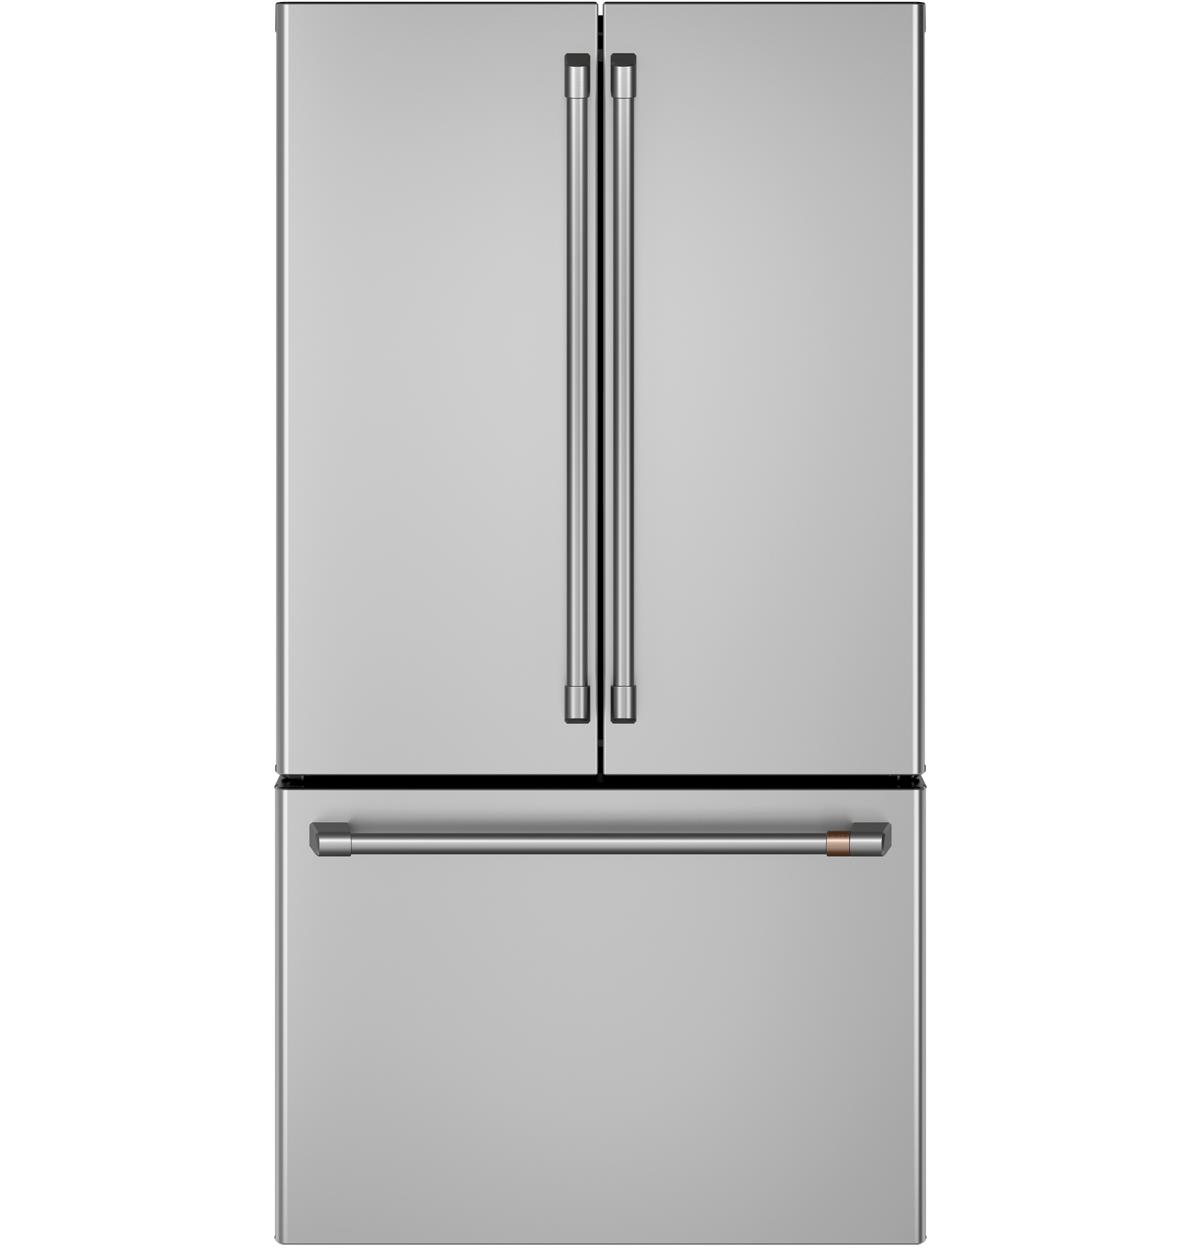 Café™ ENERGY STAR® 23.1 Cu. Ft. Smart Counter-Depth French-Door Refrigerator